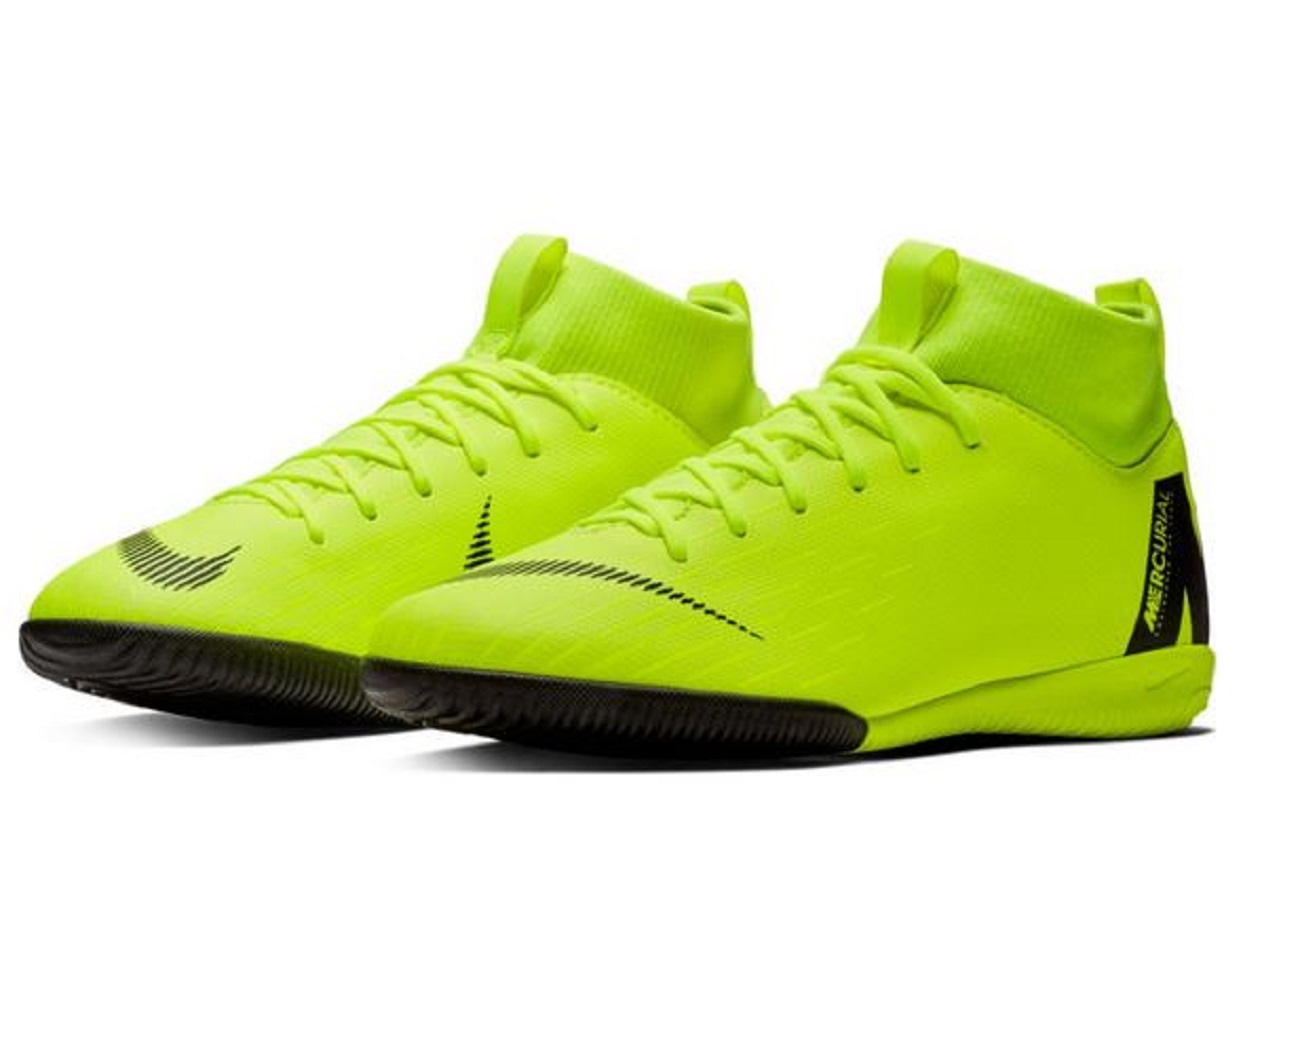 official site cheap price low priced nike SUPERFLY 6 ACADEMY GS IC Hallenschuh Kinder neongelb-schwarz